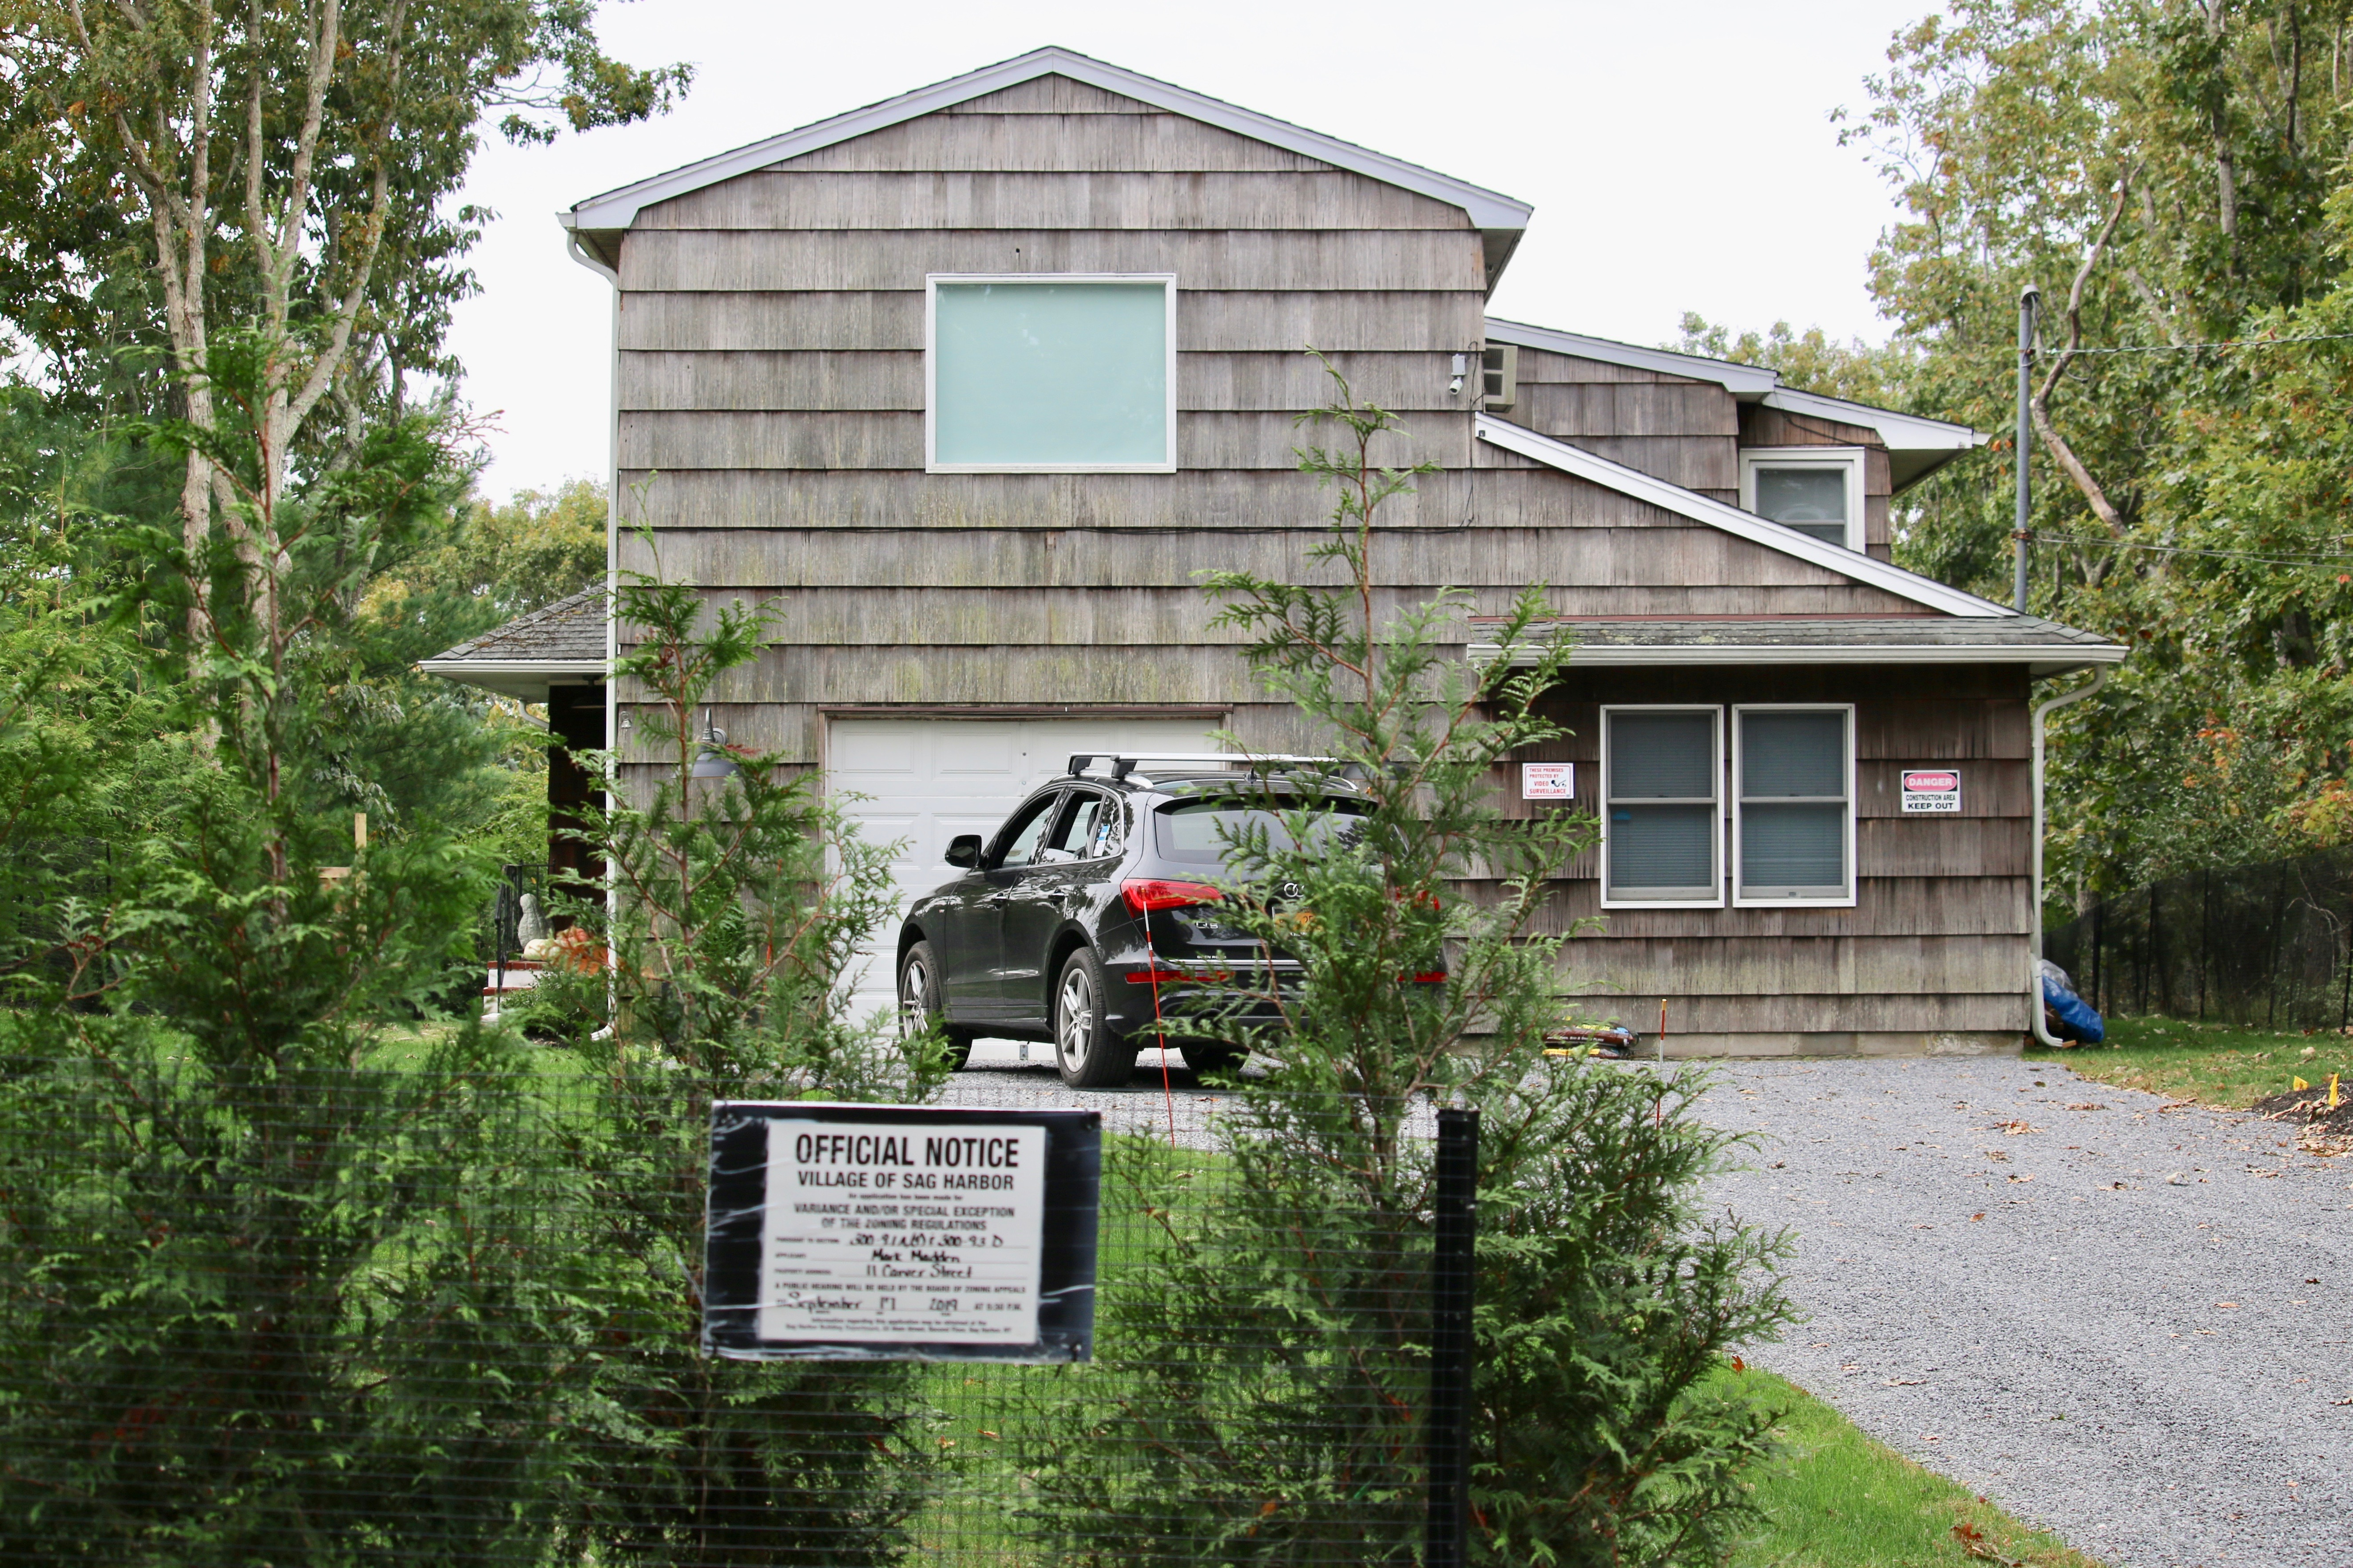 The exterior of 11 Carver Street in Sag Harbor.